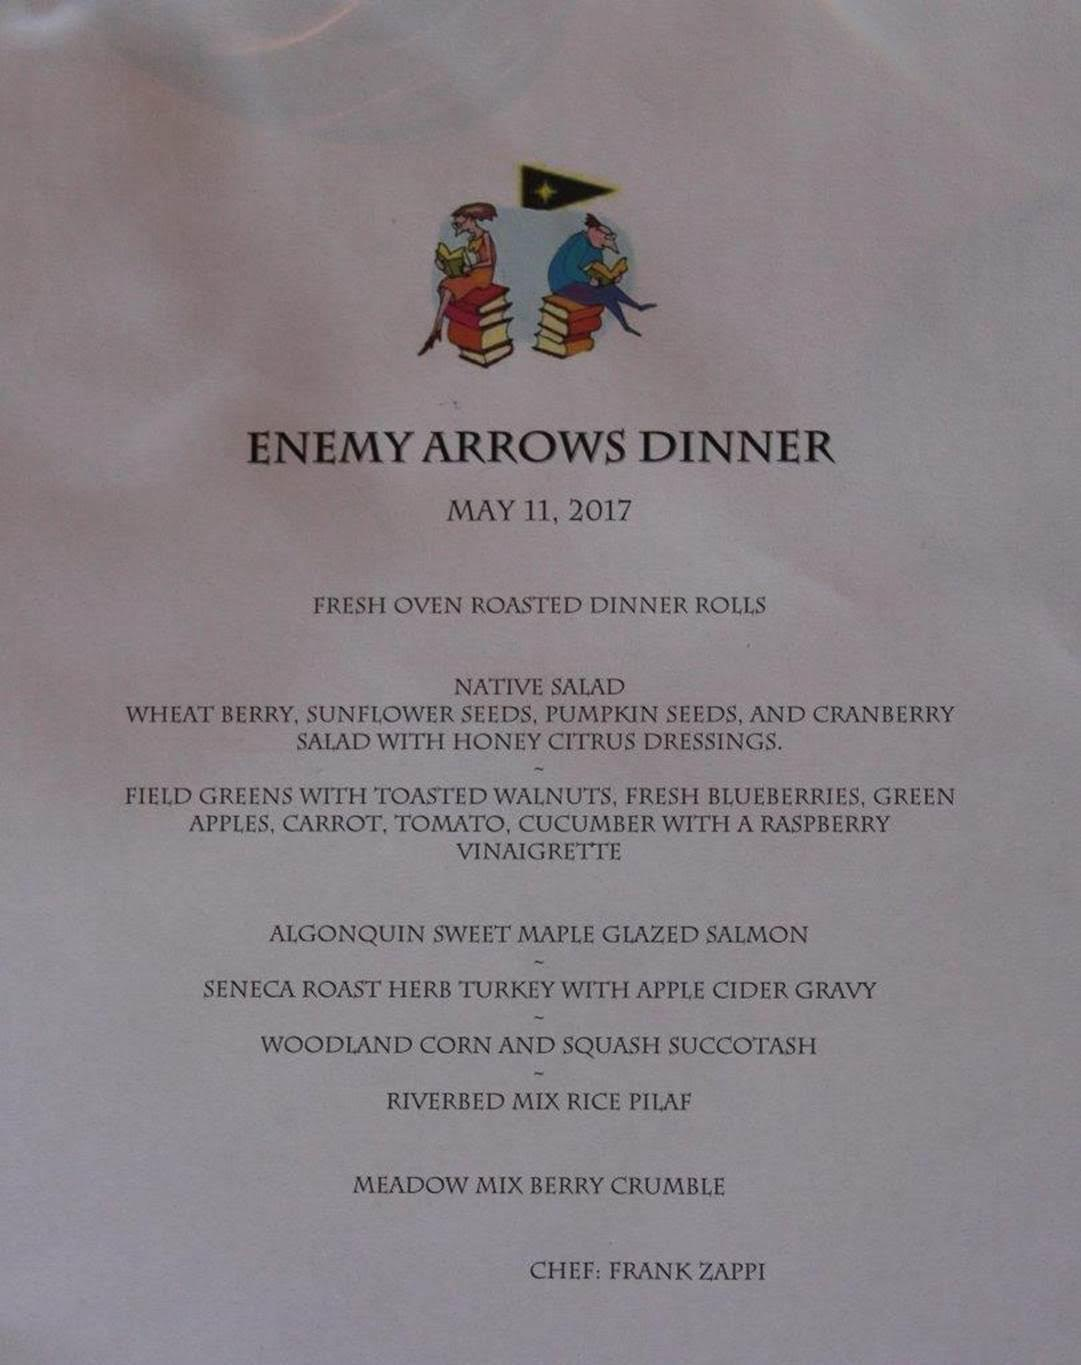 Enemy Arrows by Will O'Hara   book event at Mimico Cruising Club